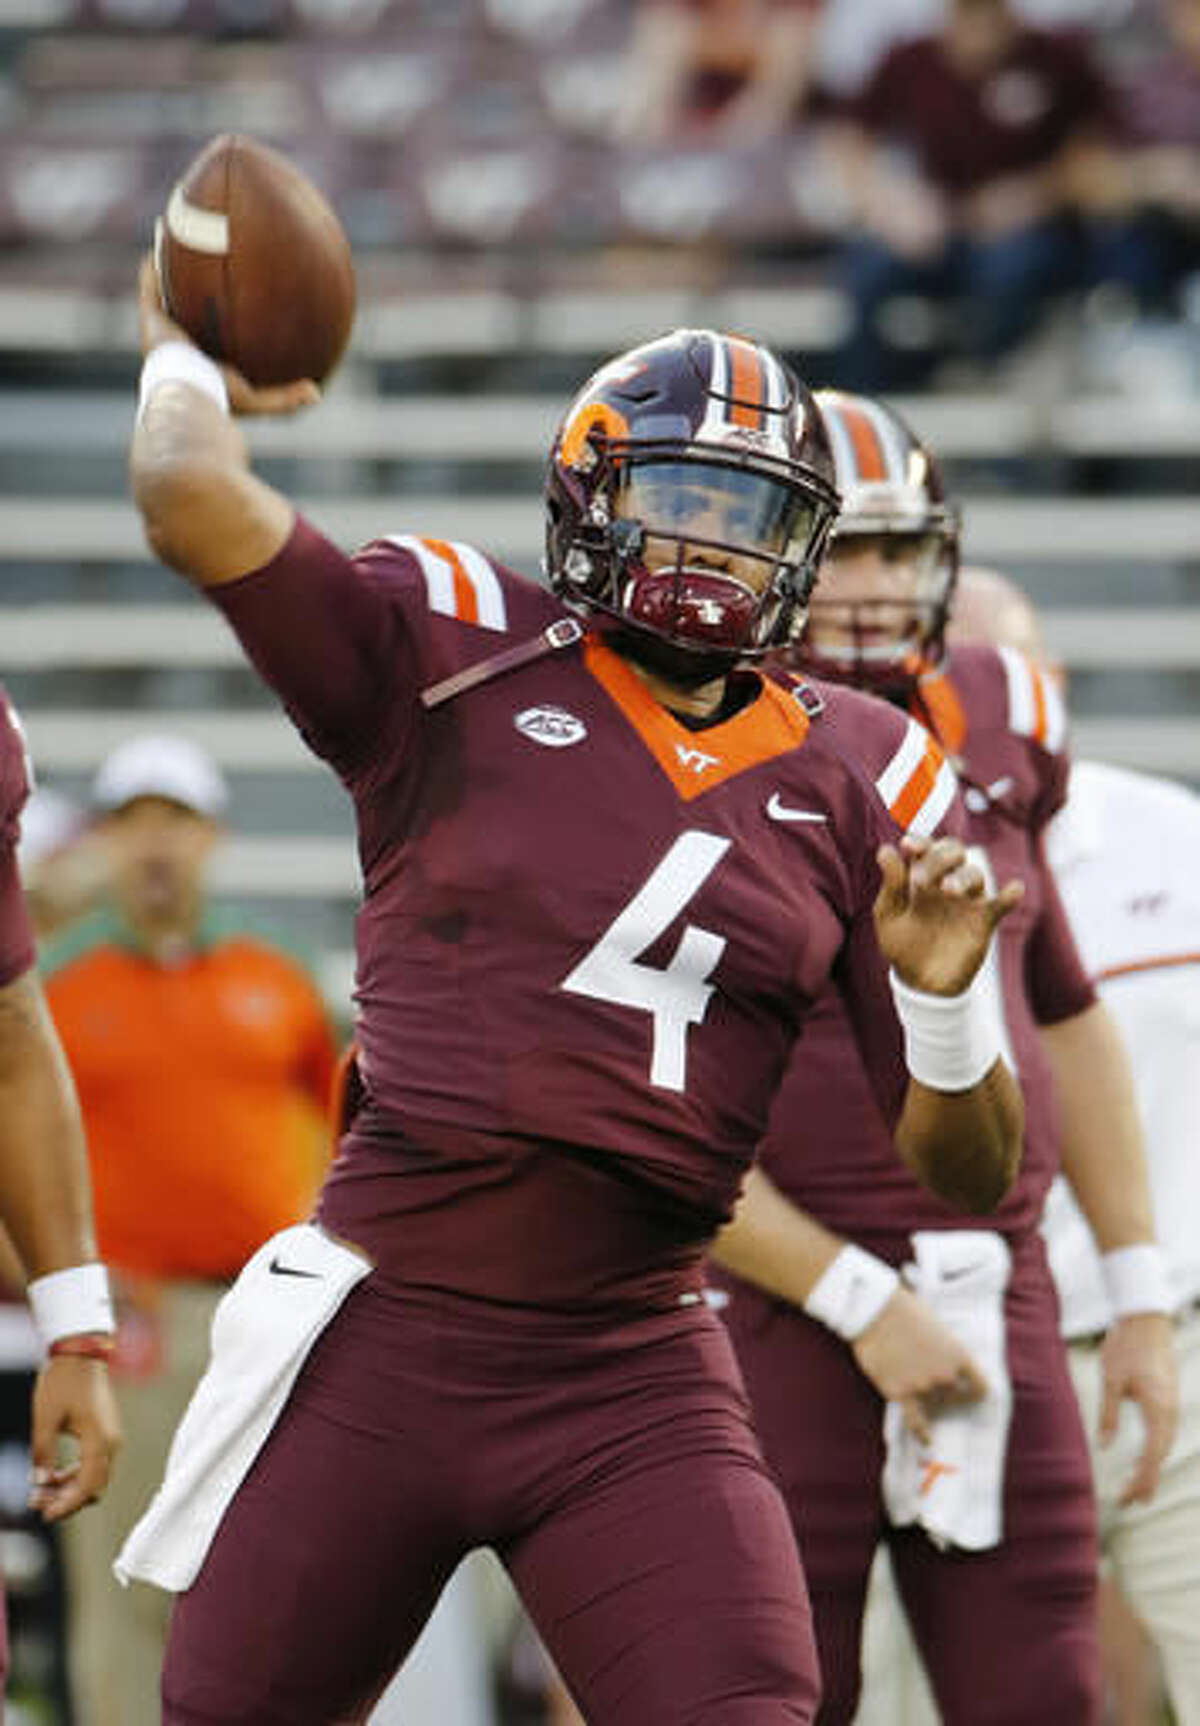 FILE - In this Oct. 20, 2016, file photo, Virginia Tech quarterback Jerod Evans (4) tosses a pass prior to the start of the Miami-Virginia Tech NCAA college football game at Lane stadium in Blacksburg, Va. Virginia Tech has its destiny in its hands if it wants to represent the ACC's Coastal Division in the league title game. (AP Photo/Steve Helber, File)